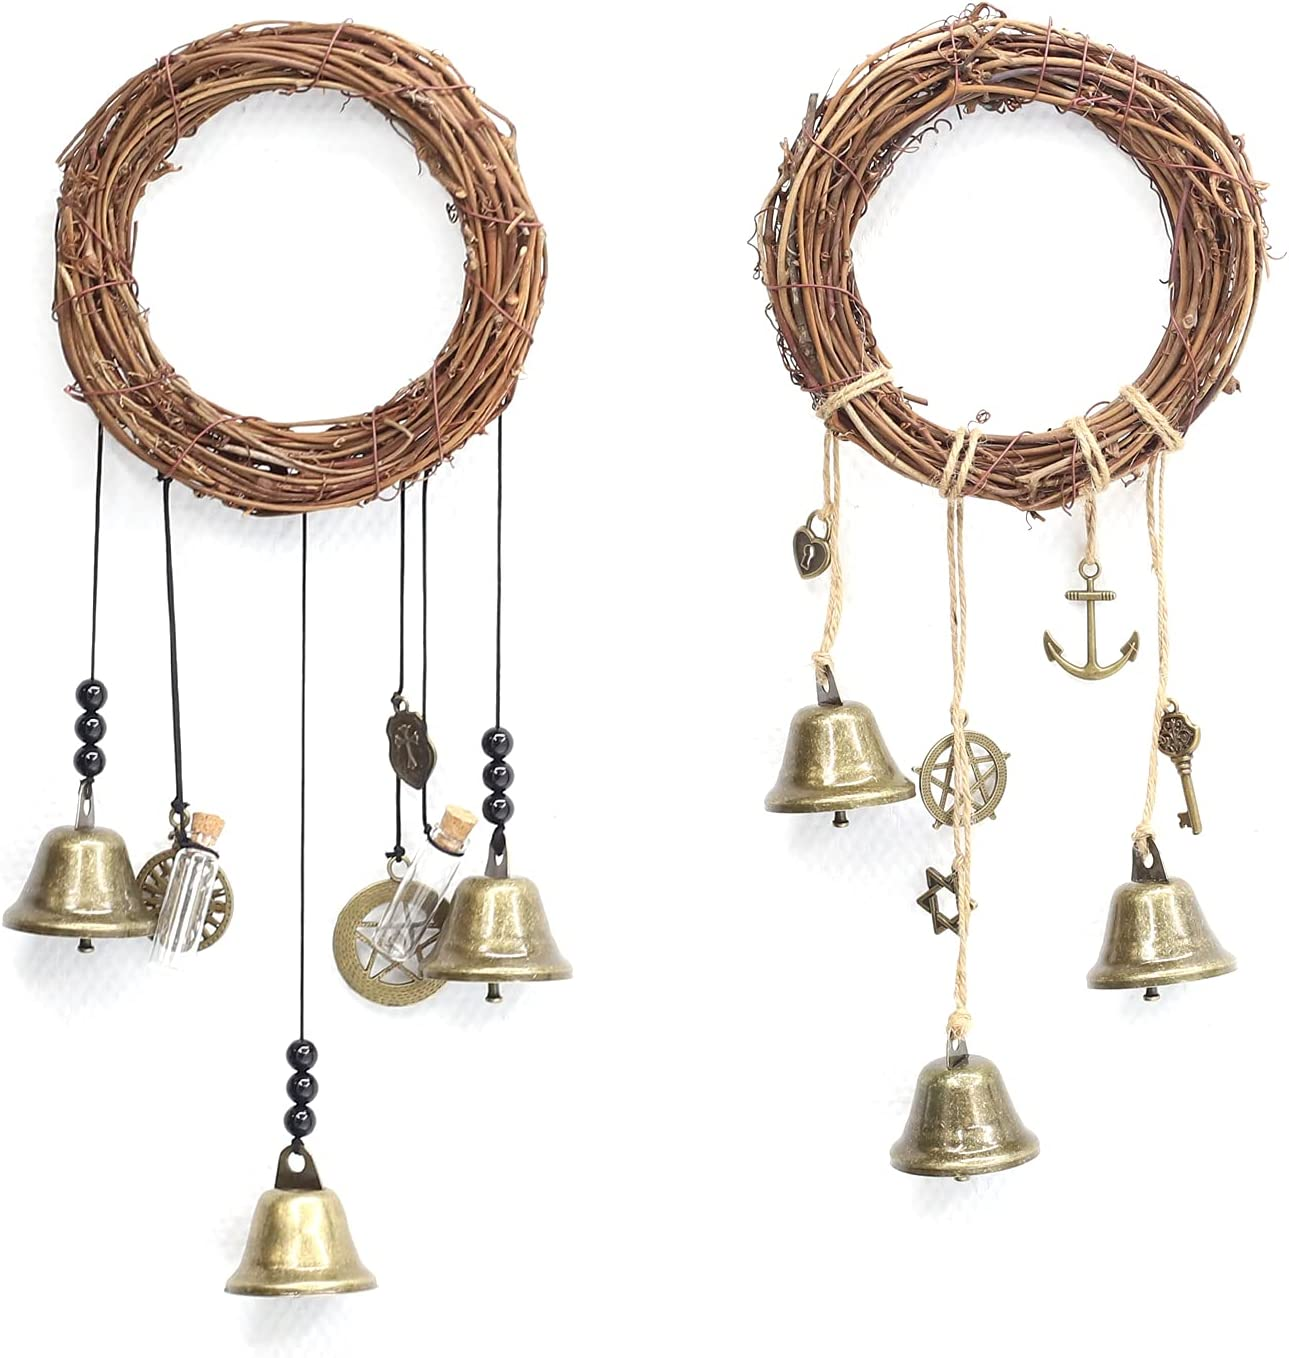 2 Pieces Witch Bells,Home Protection Hanging Bell Magic Wind Chimes for Health and Safe,Clear Negative Energies - Wiccan Decor,Witchcraft Supplies,New Home Gift,Home Door Decor (Nature, 2)